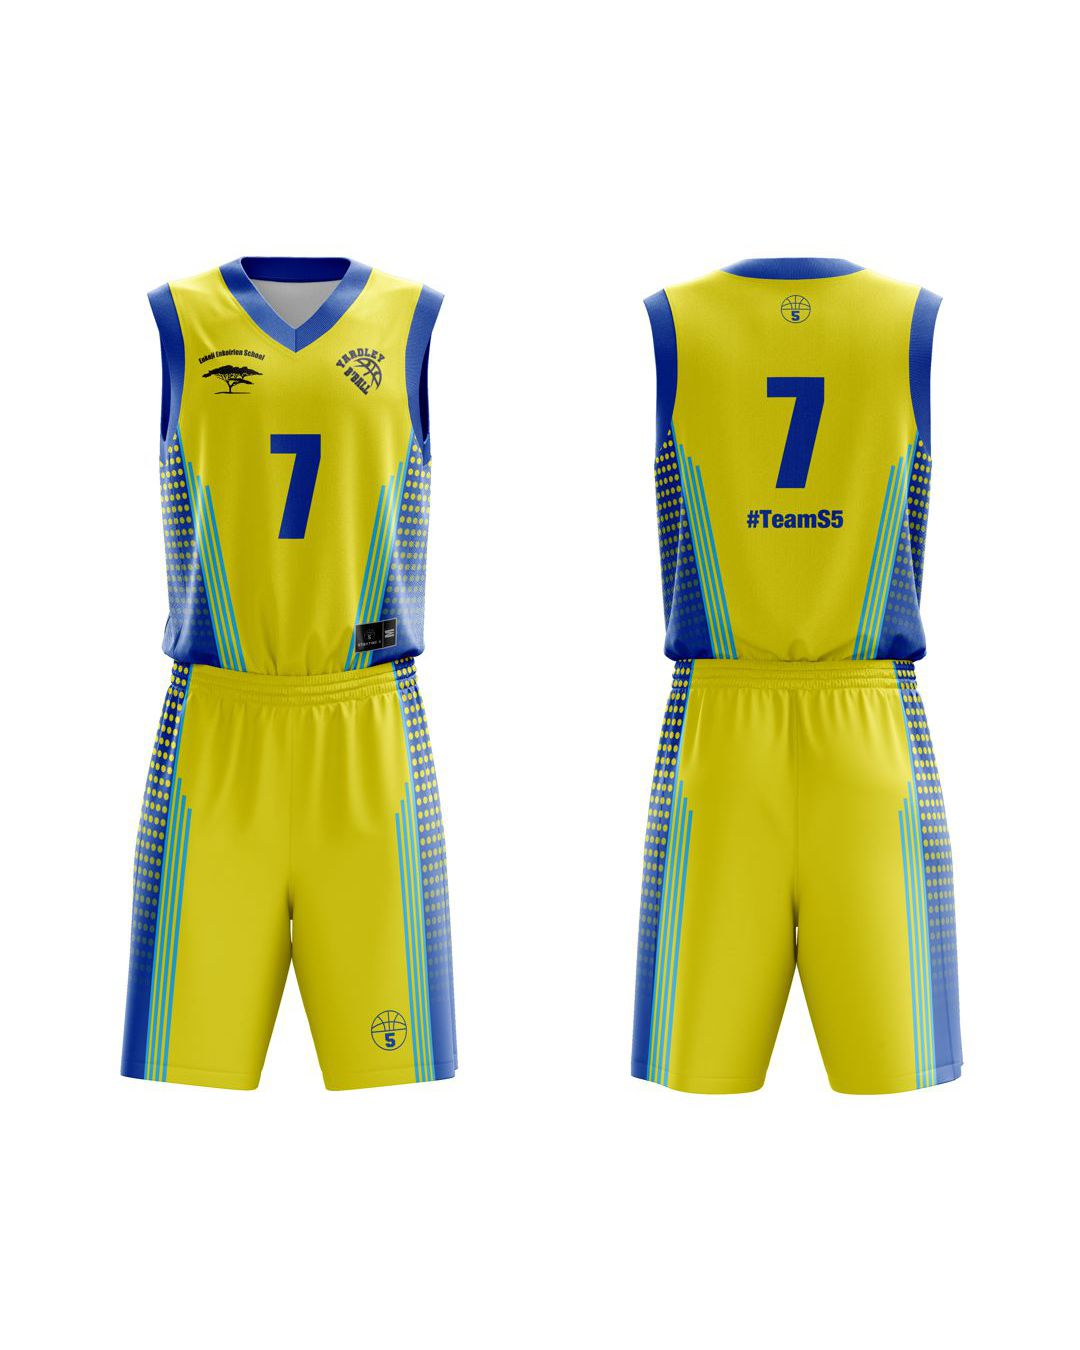 STARTING 5 Sublimated Basketball Kit Single-Sided Example 26